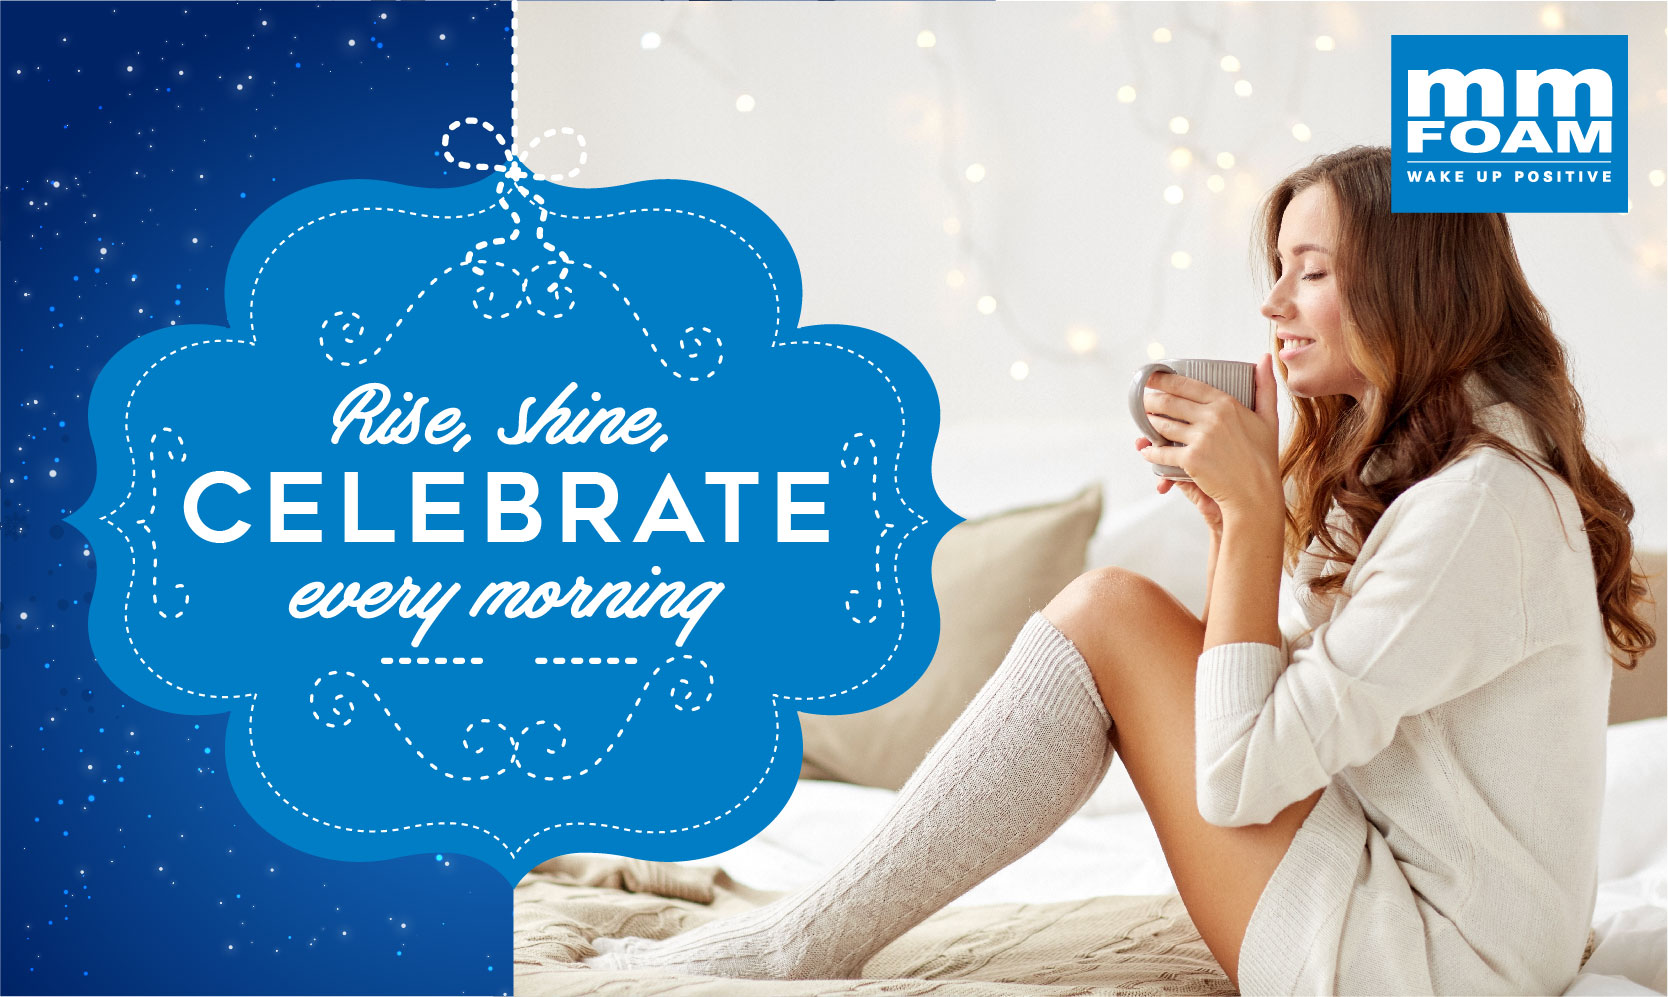 Wake up and celebrate the season.